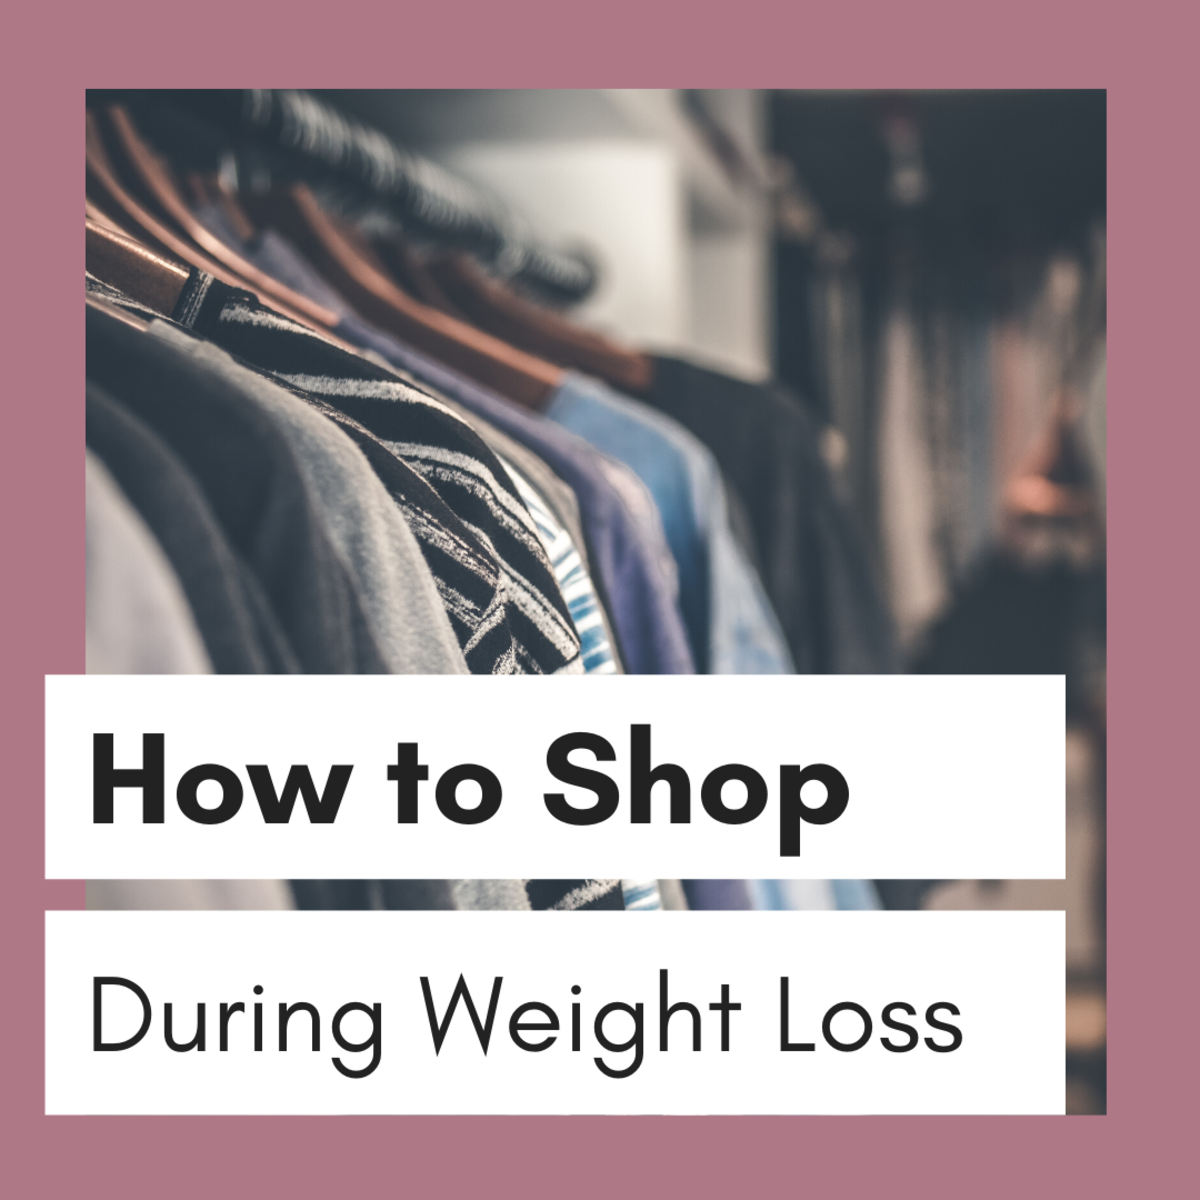 How to Shop While Losing Weight